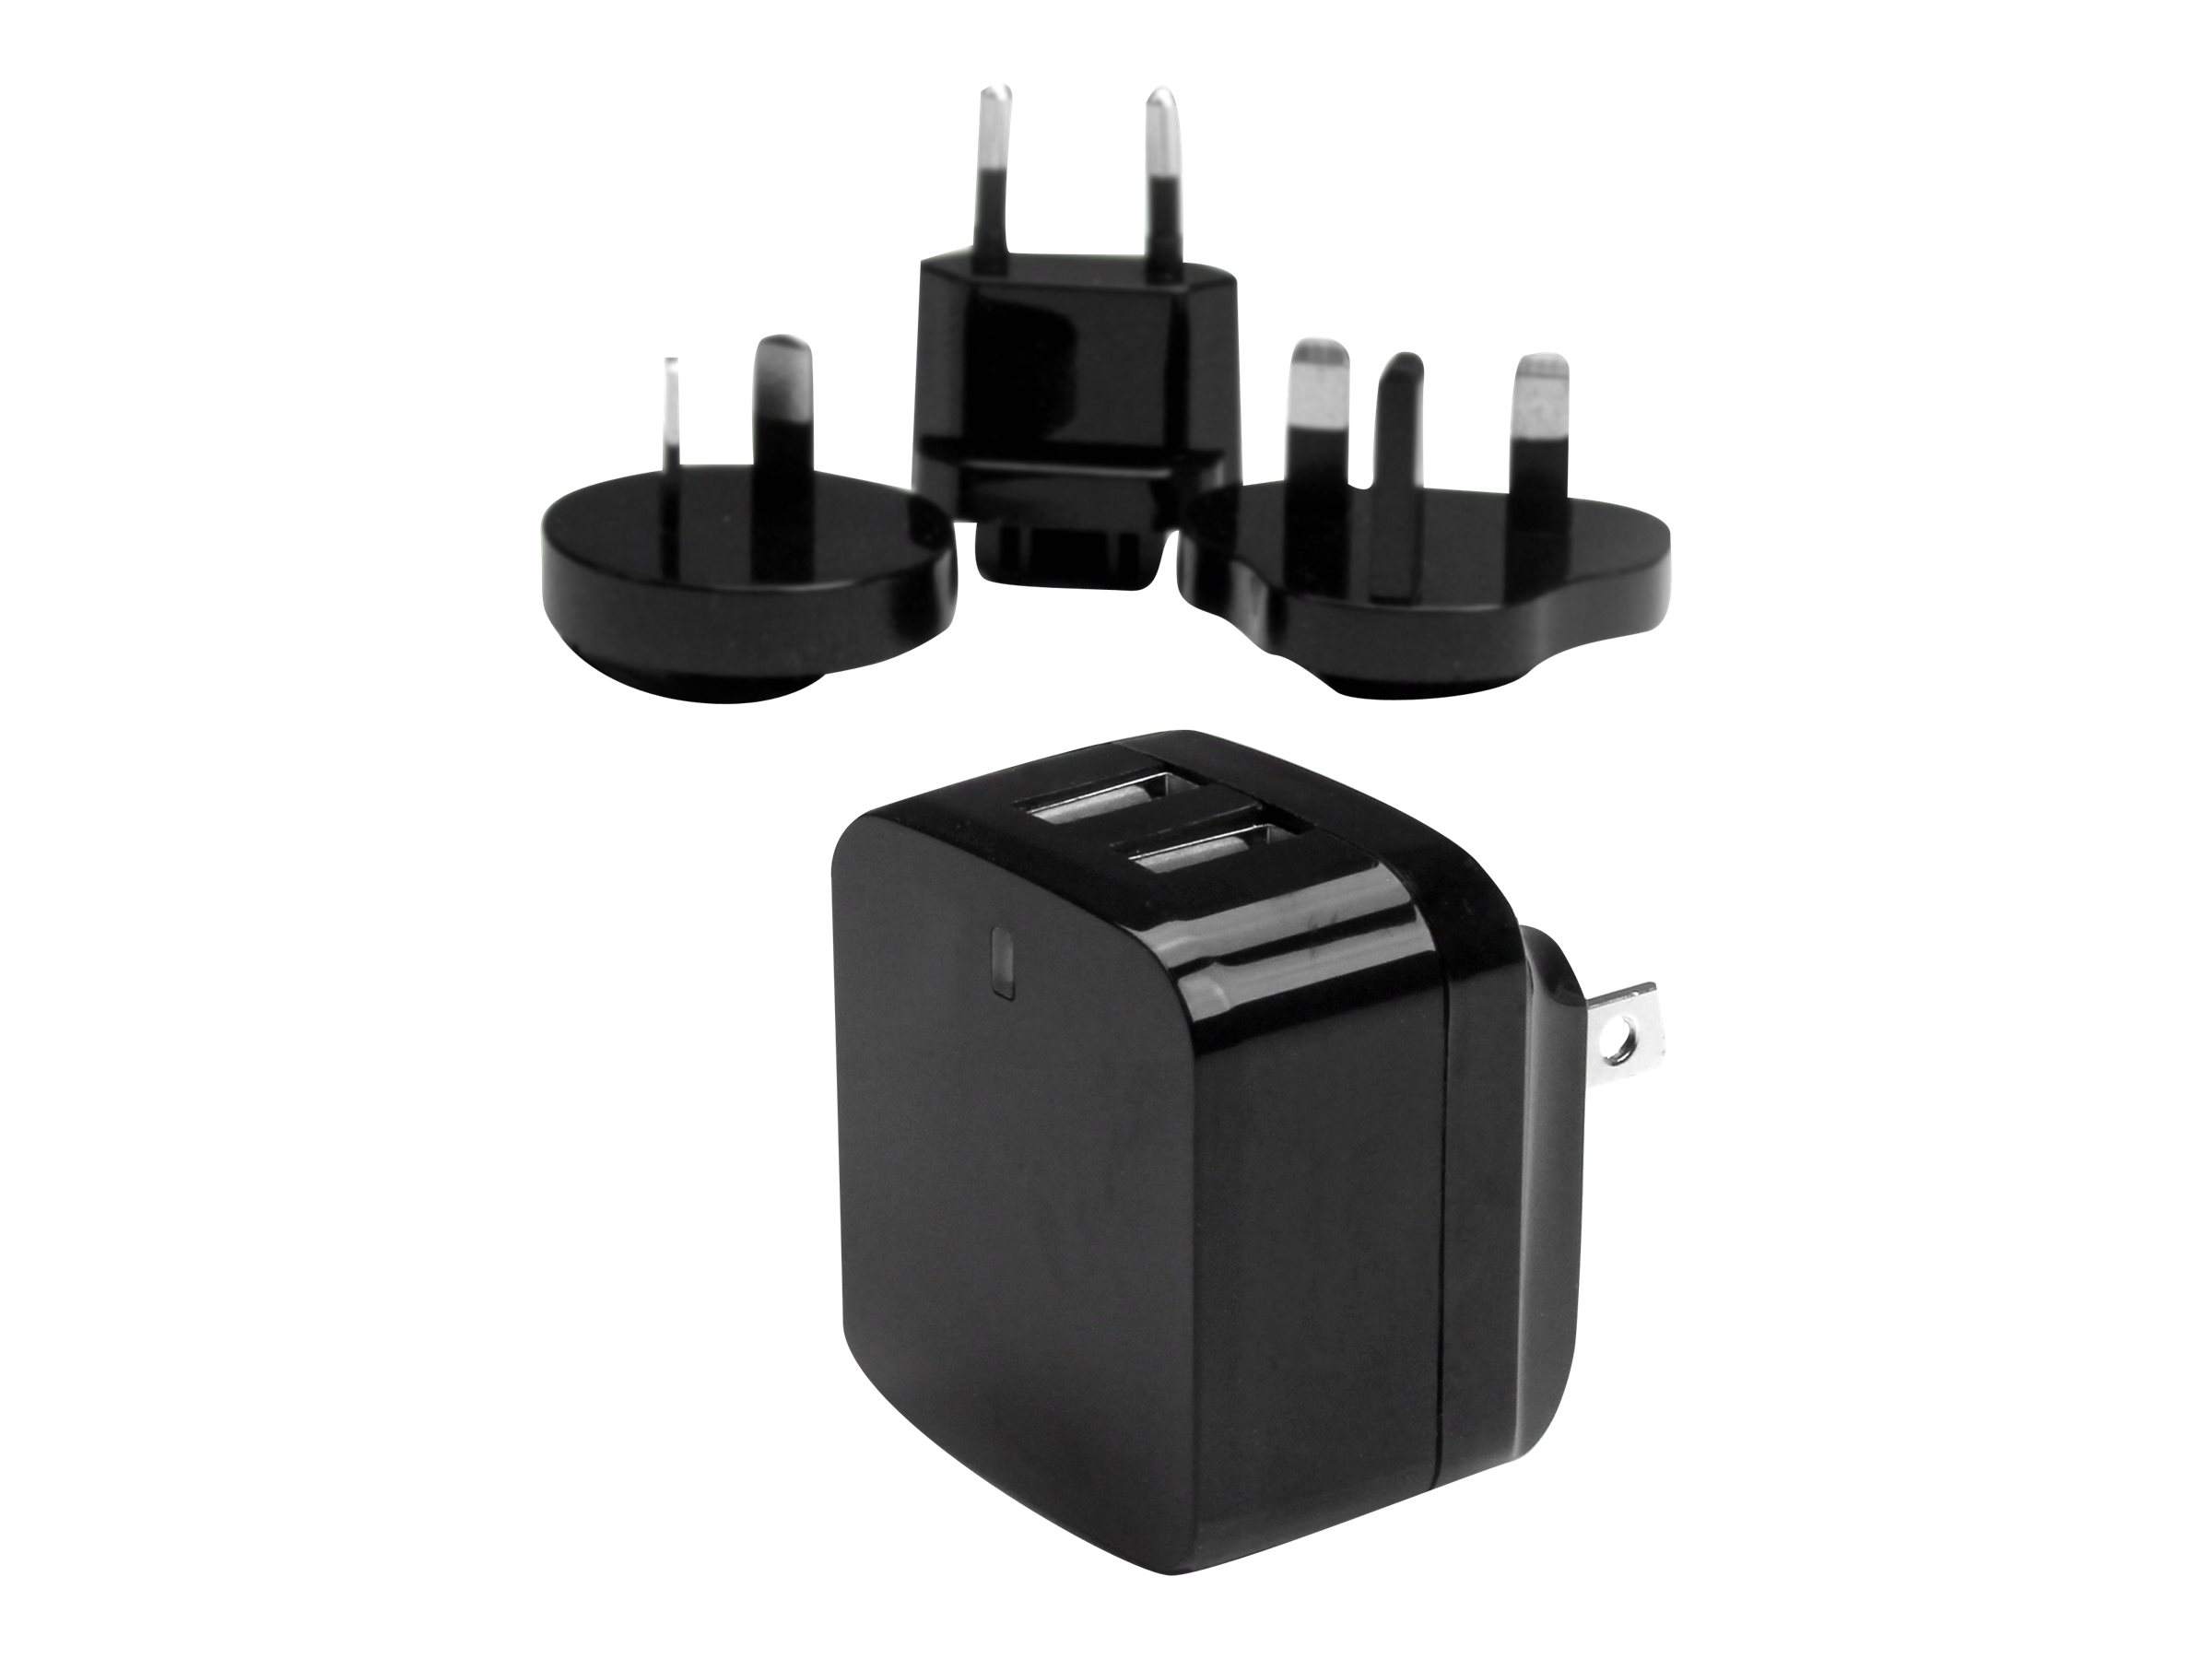 StarTech.com Dual Port USB Wall Charger 17W-3.4A